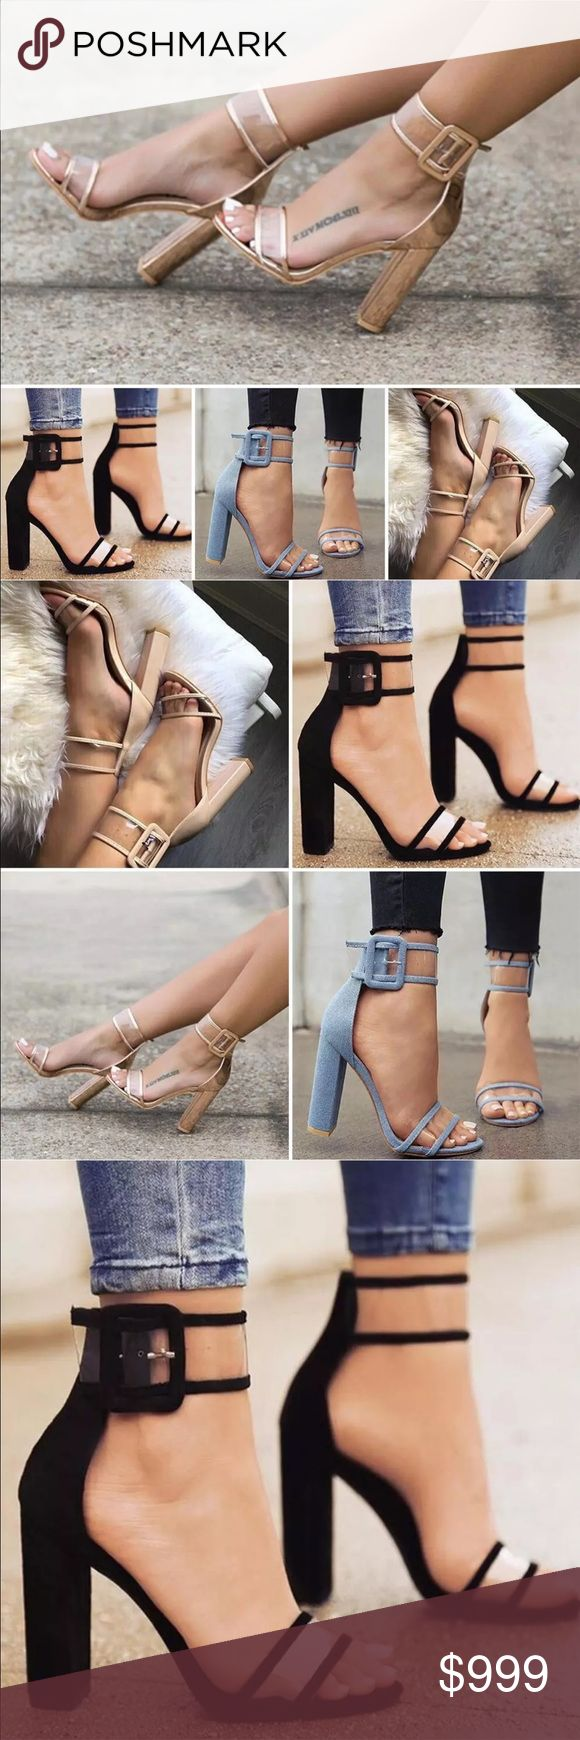 "Spring/Summer '17 Denim/Nude/Black Block Heel Spring/Summer '17 • Denim/Nude/Black Block Heel • Beautiful Open Toe / Peep Toe / Ankle Strap / Clear Strap / Large Buckle / Block Heel / High Heels/ 4"" heel / High Block Heel Sandal/ Coming Soon! Like listing and comment below to get first dibs! Limited quantity available in first order! Available in Light Sky Blue Denim, Black + Nude/Khaki. Shoes Heels"